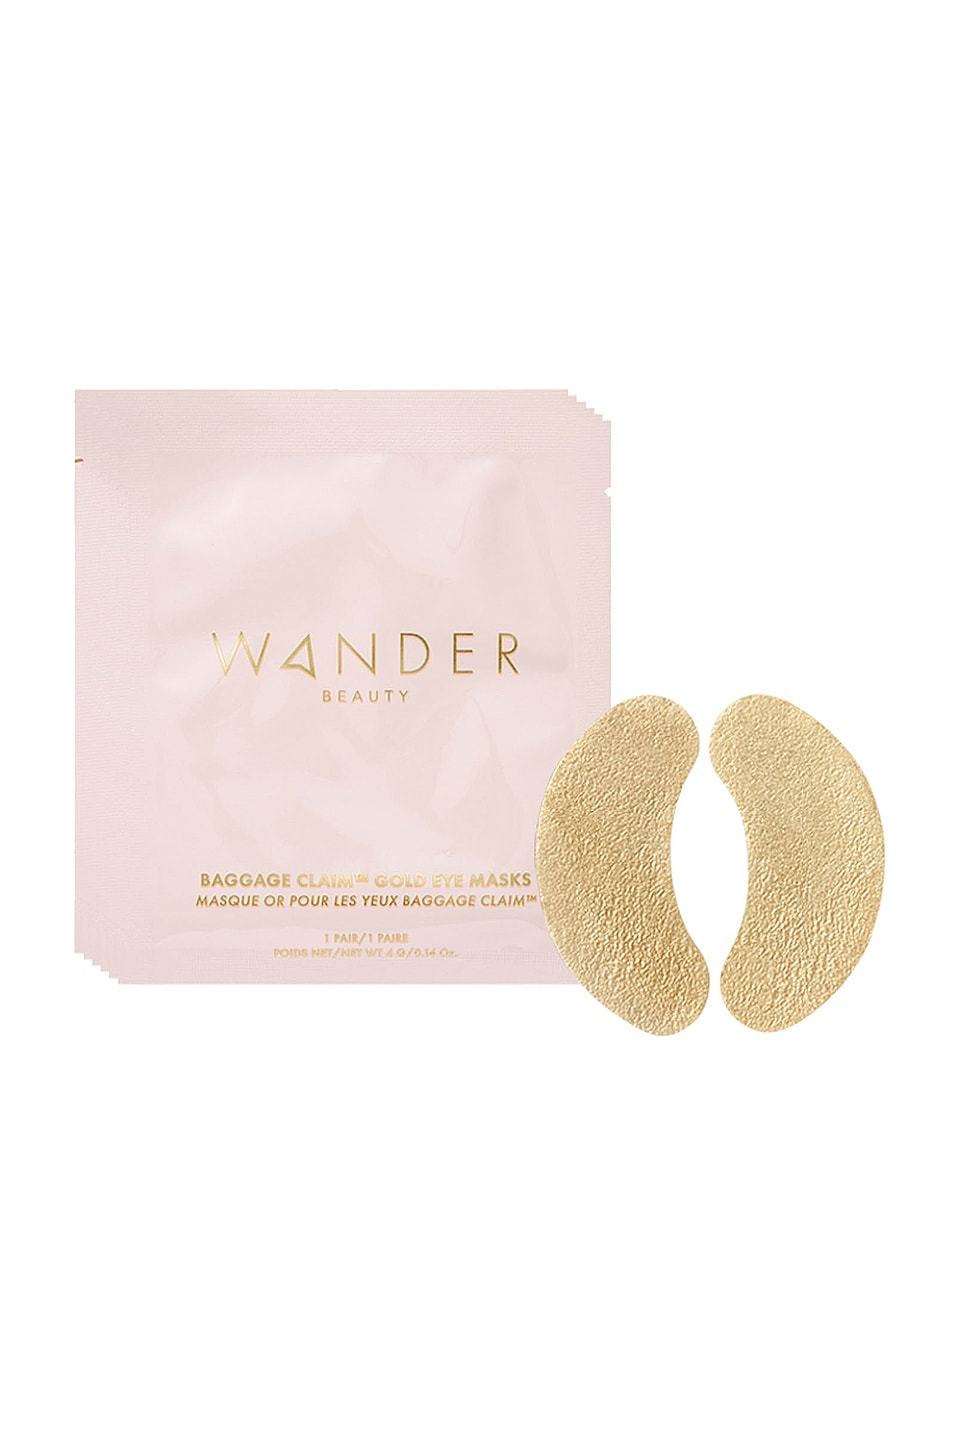 Wander Beauty Baggage Claim Gold Eye Mask 6 Pack